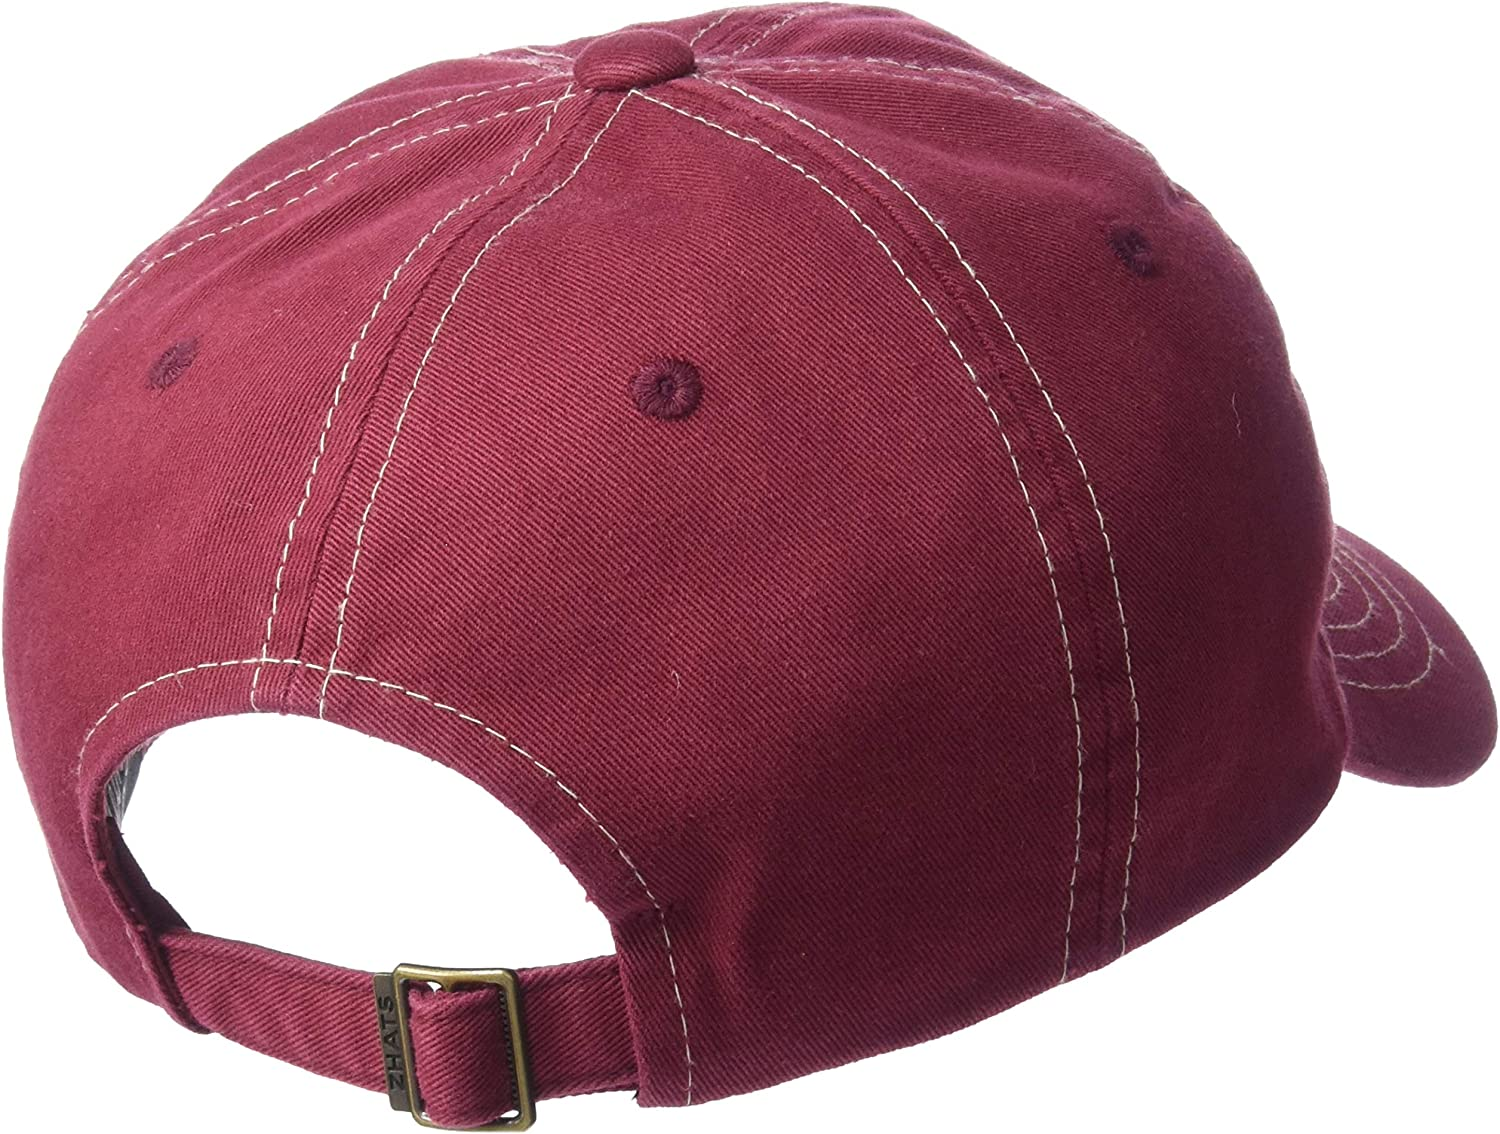 Adjustable NCAA Zephyr Washington State Cougars Mens Solo Washed Cotton Relaxed Hat Primary Team Color